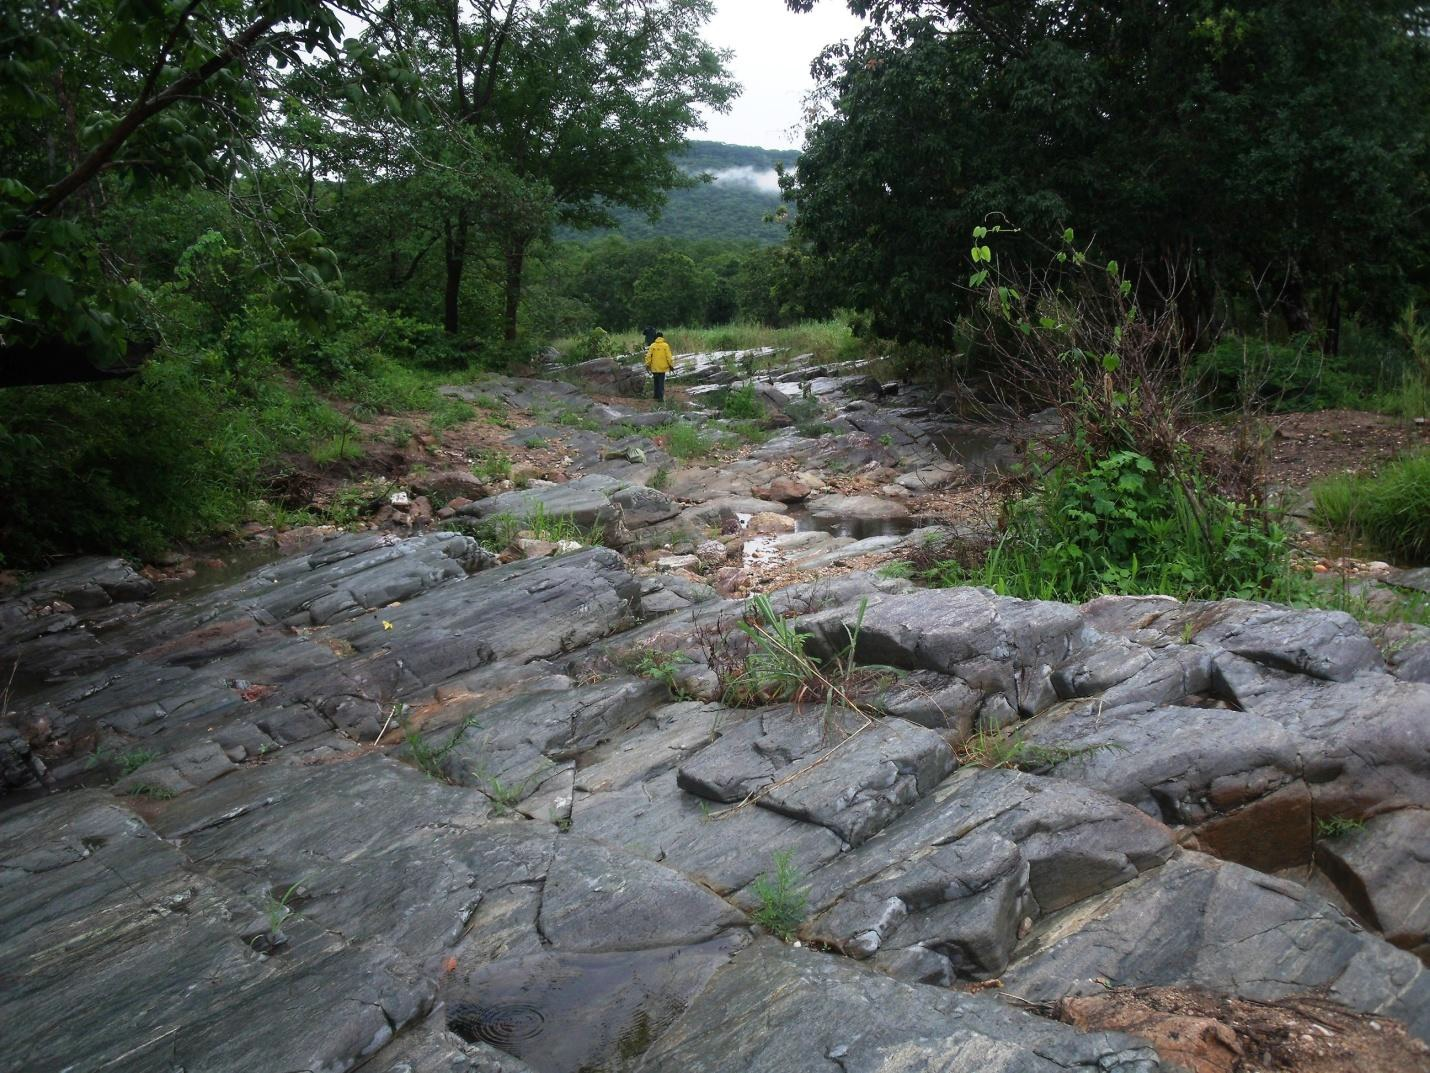 PL-9854-Granitic-Gneiss-Exposed-Along-The-River.jpg